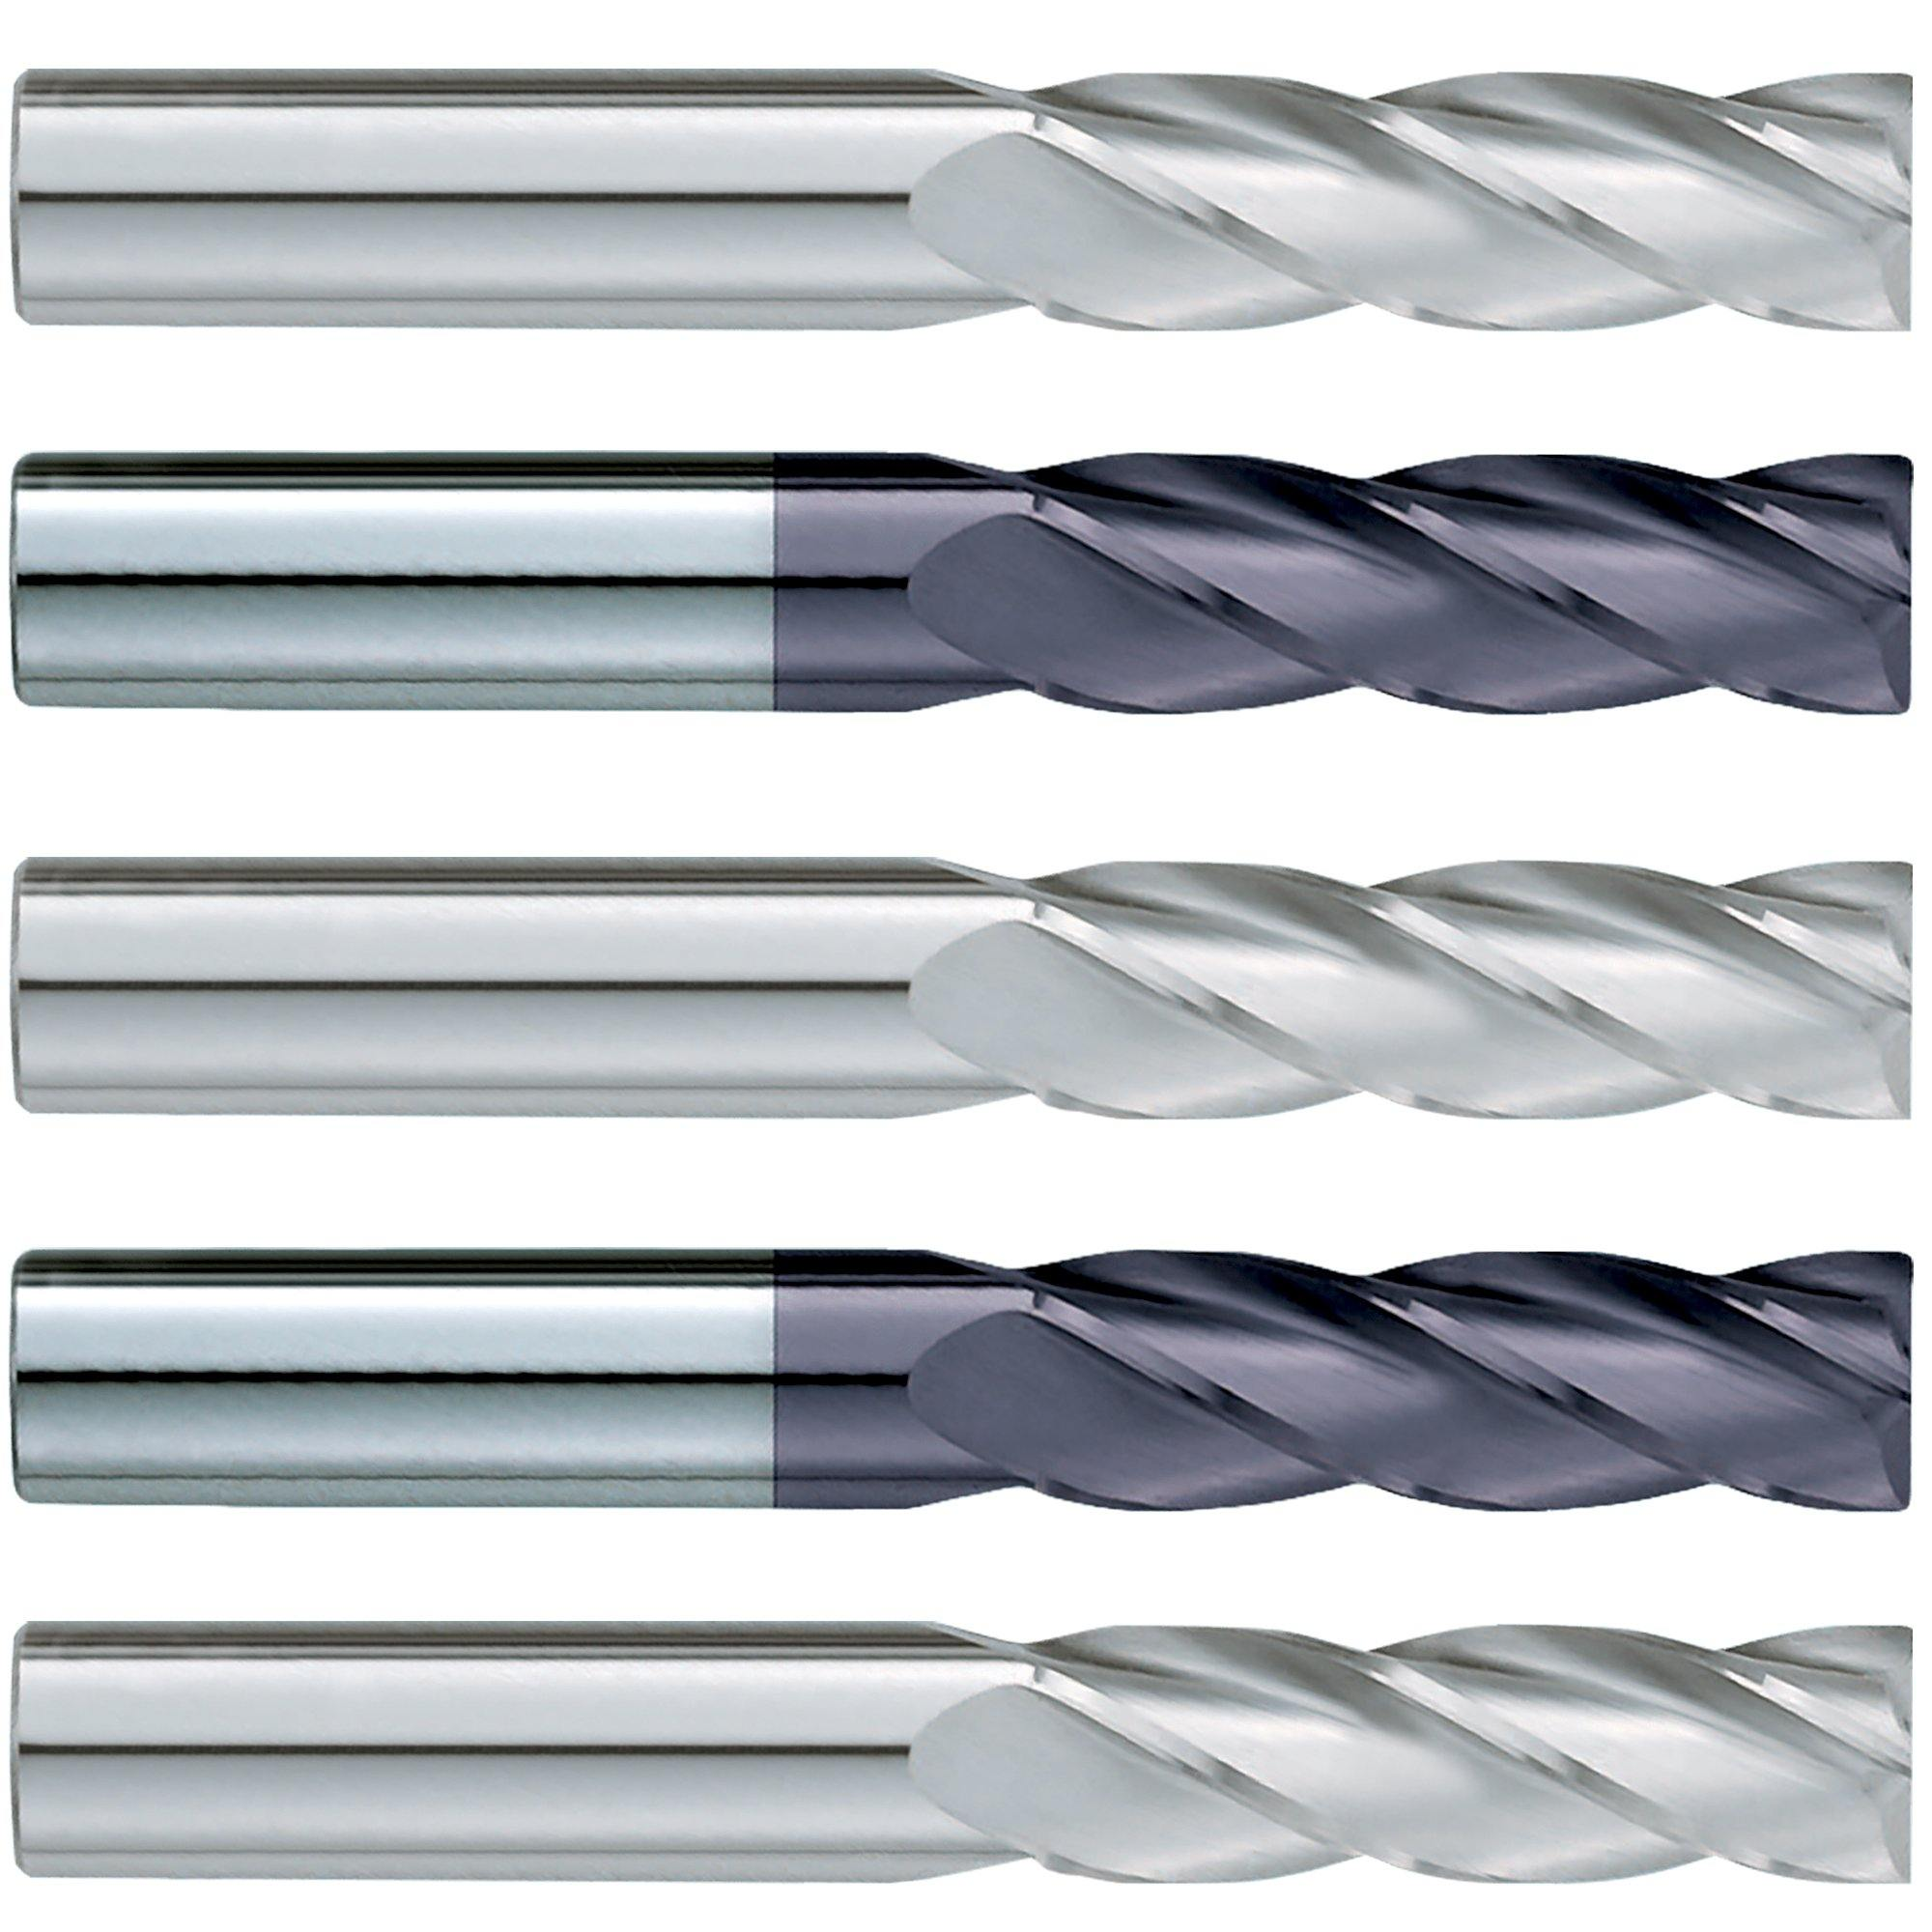 "(5 Pack) 3/8"" x 1-3/4"" x 4"" Extra Long Square Carbide End Mill - End Mill Store"